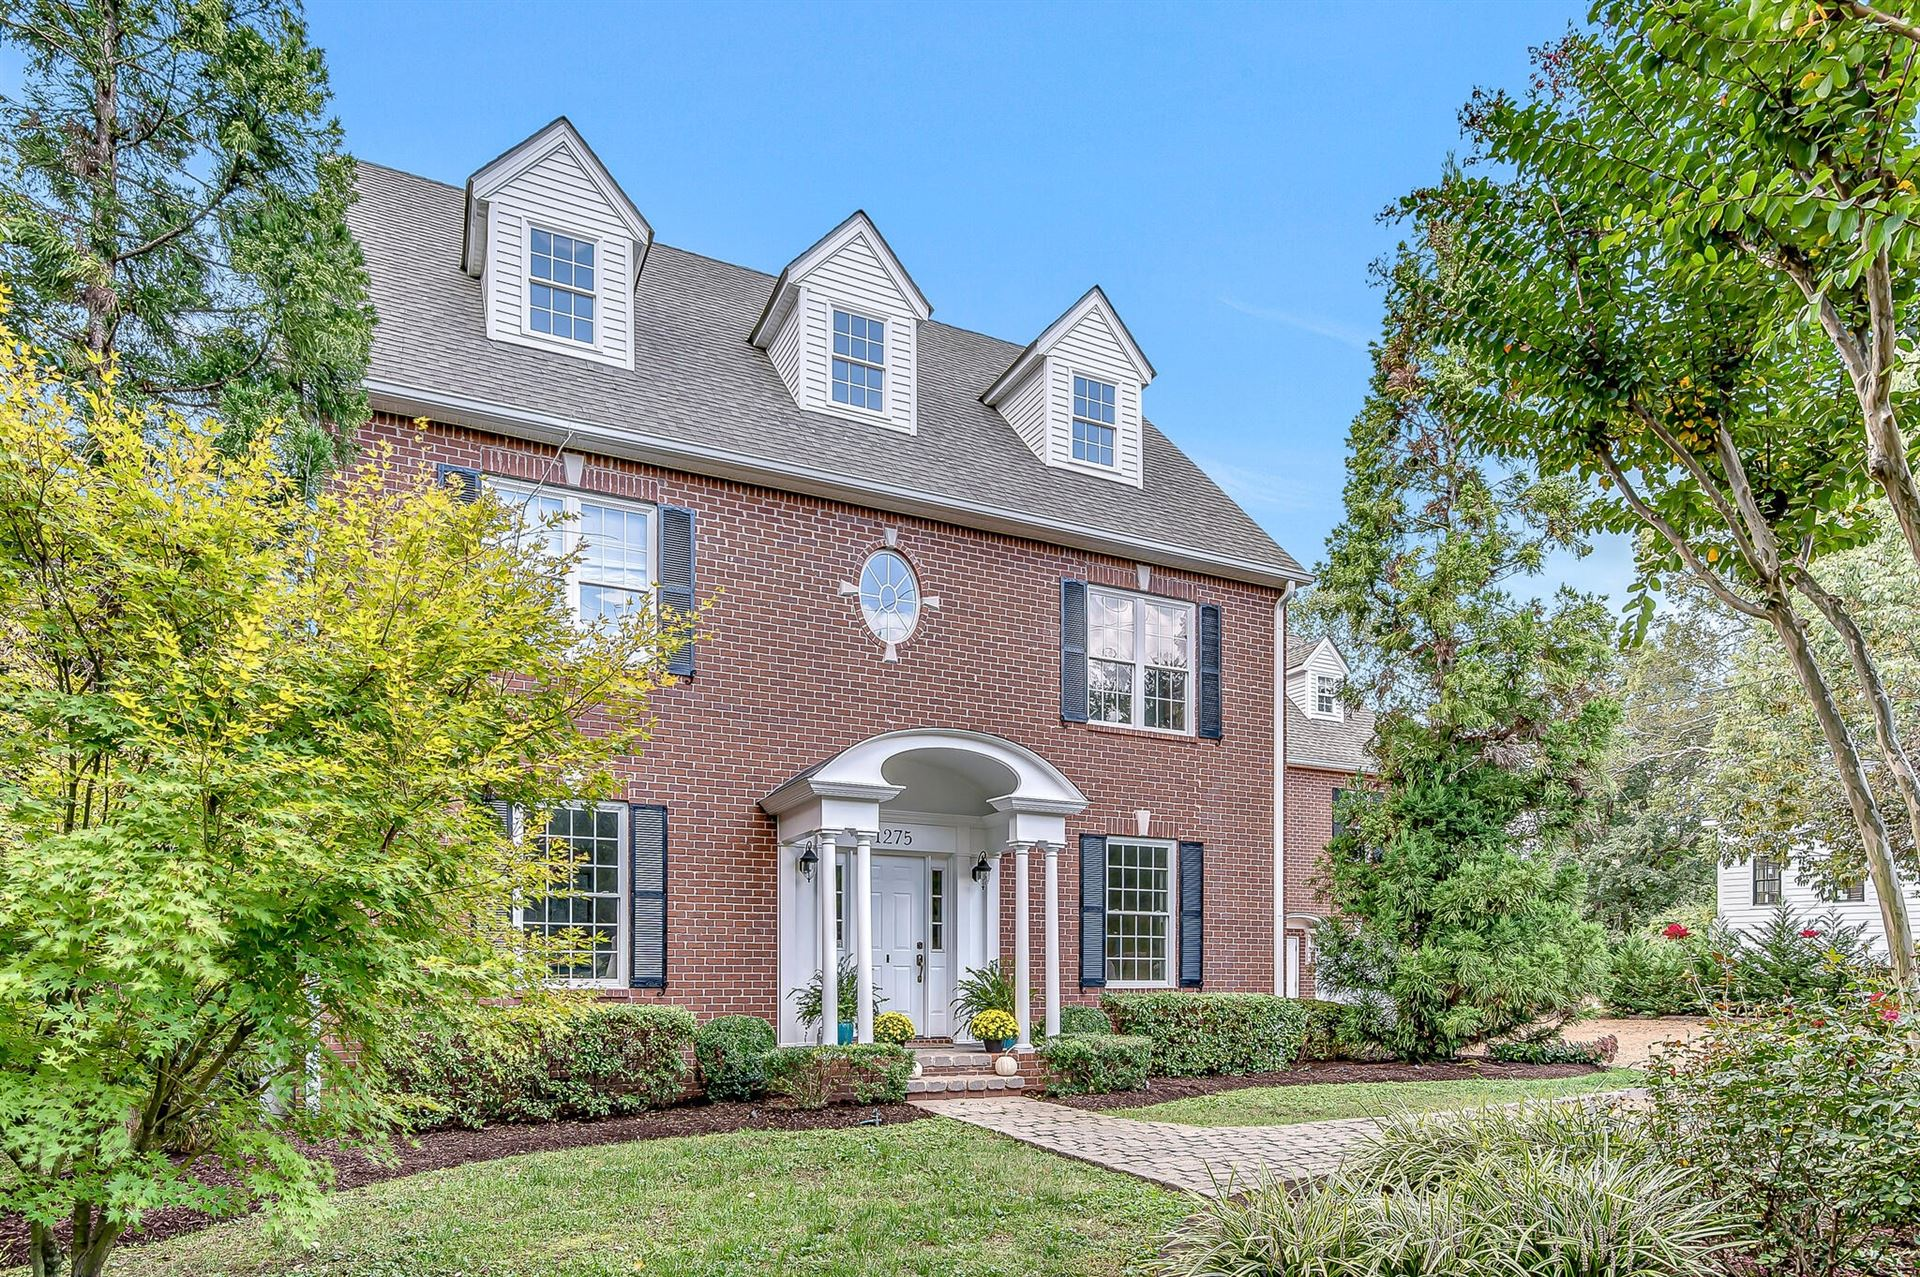 Photo of 1275 Old Hickory Blvd, Brentwood, TN 37027 (MLS # 2188796)